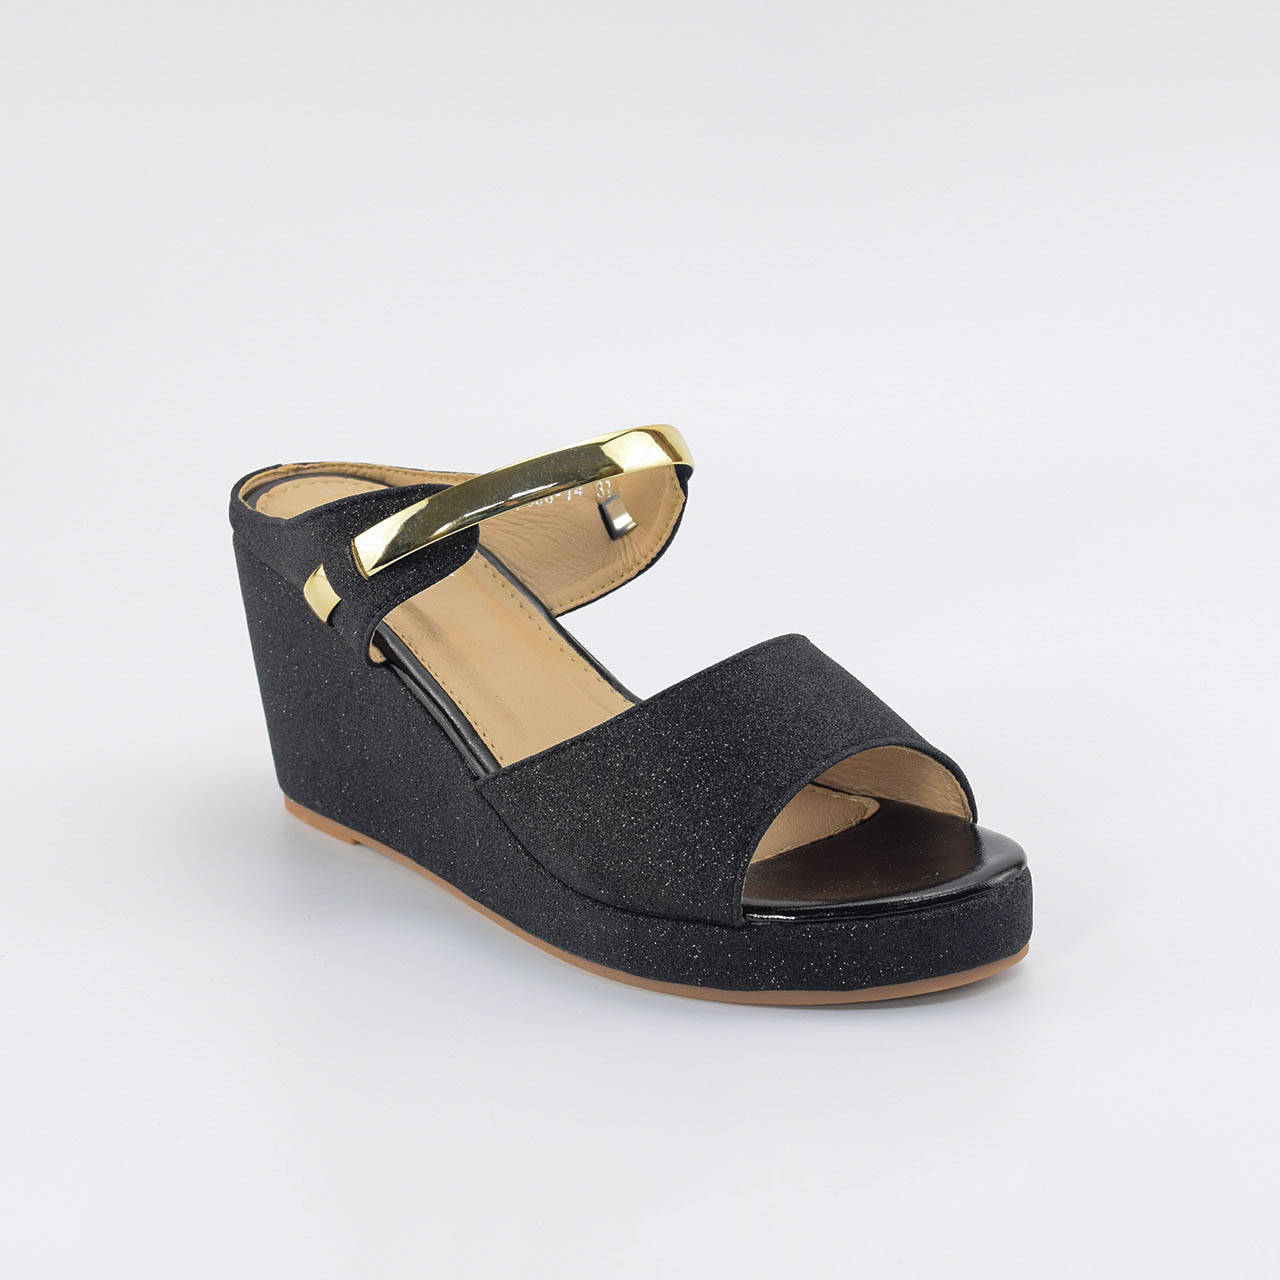 Maeve Wedges in Black